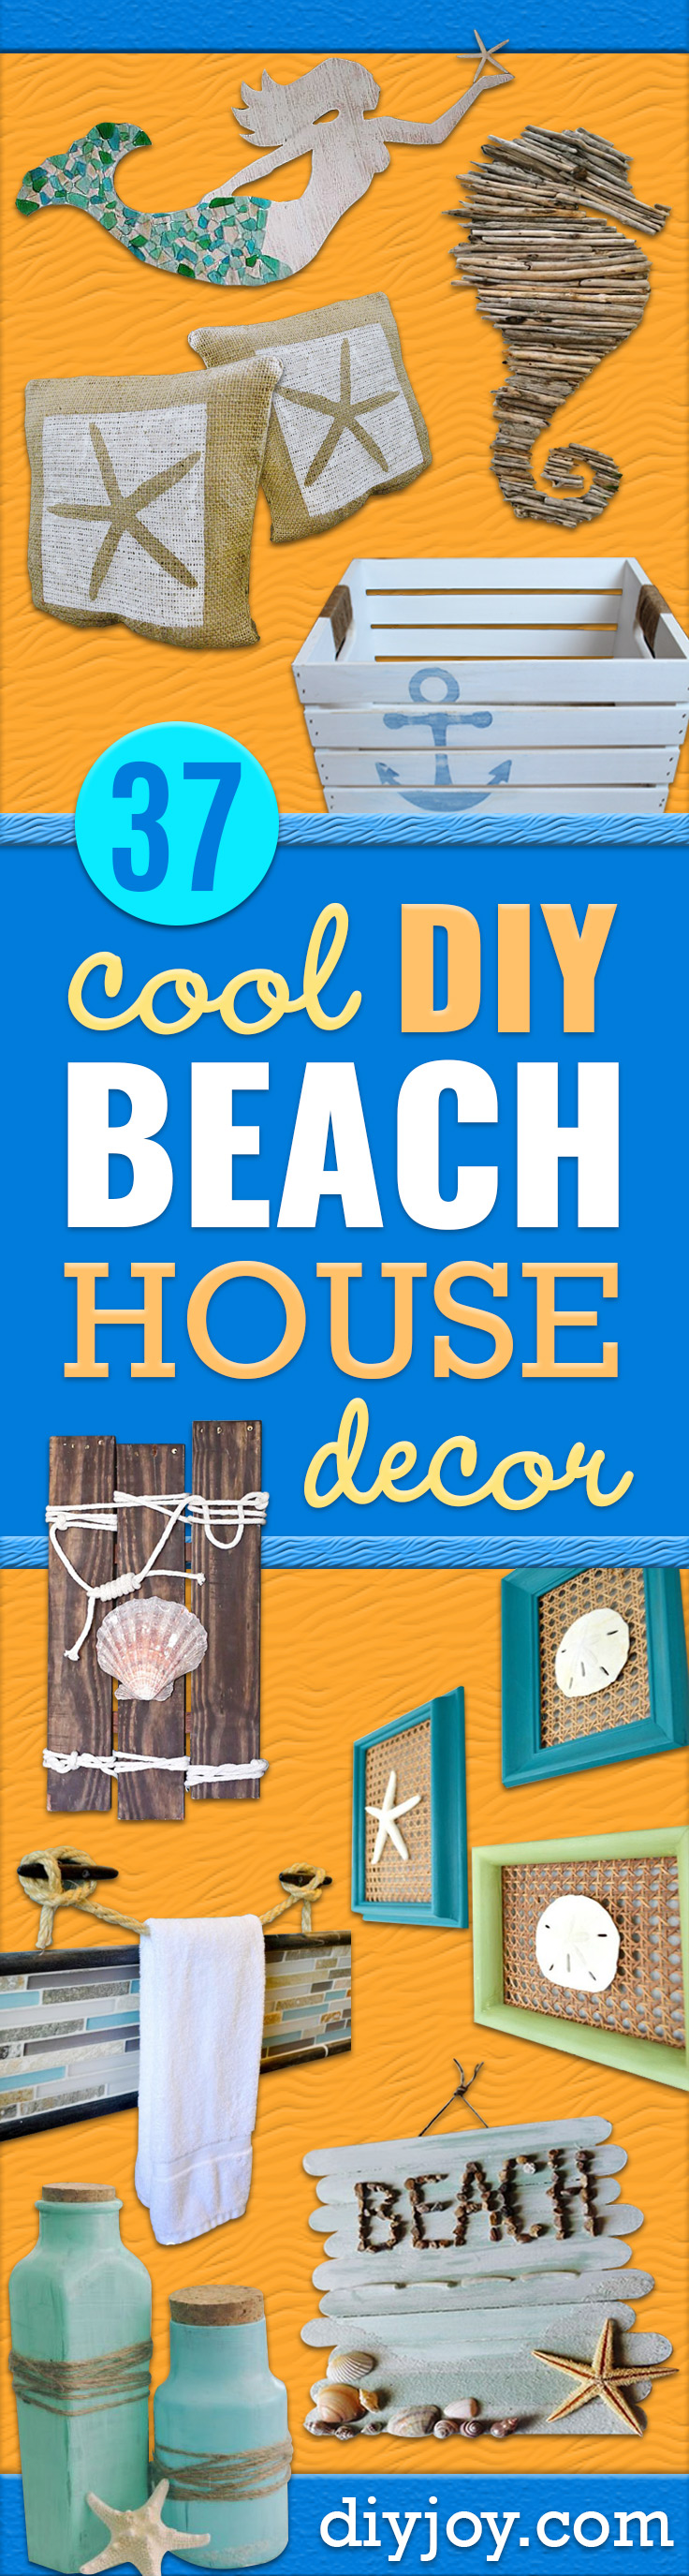 37 best diy beach house decor ideas diy beach house decor cool diy decor ideas while on a budget cool ideas solutioingenieria Gallery